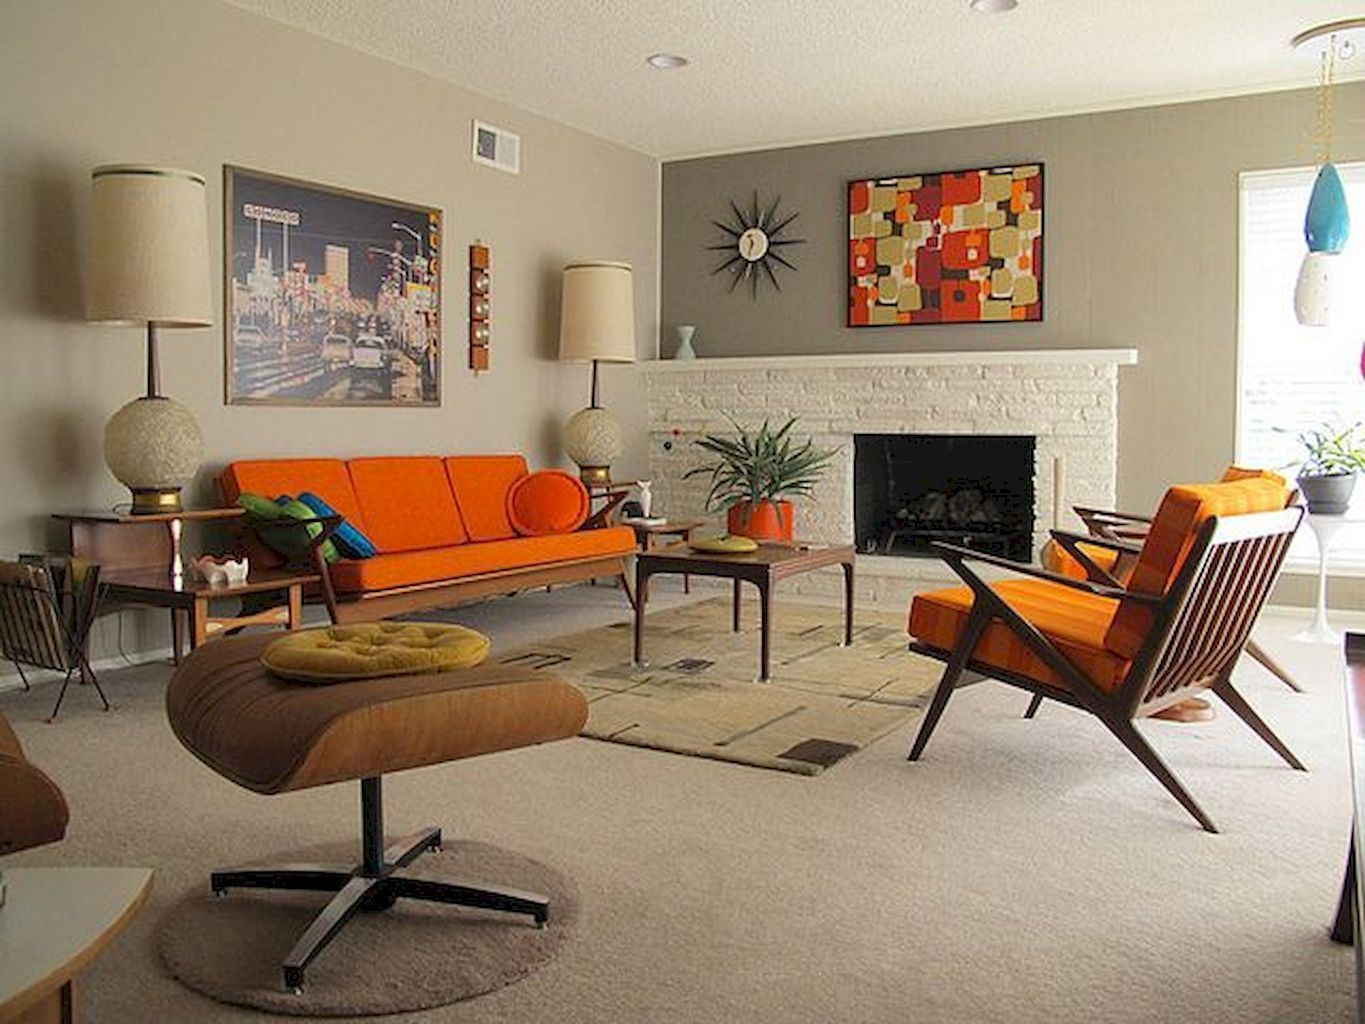 80 awesome mid century modern design ideas (19) | Mid century ...